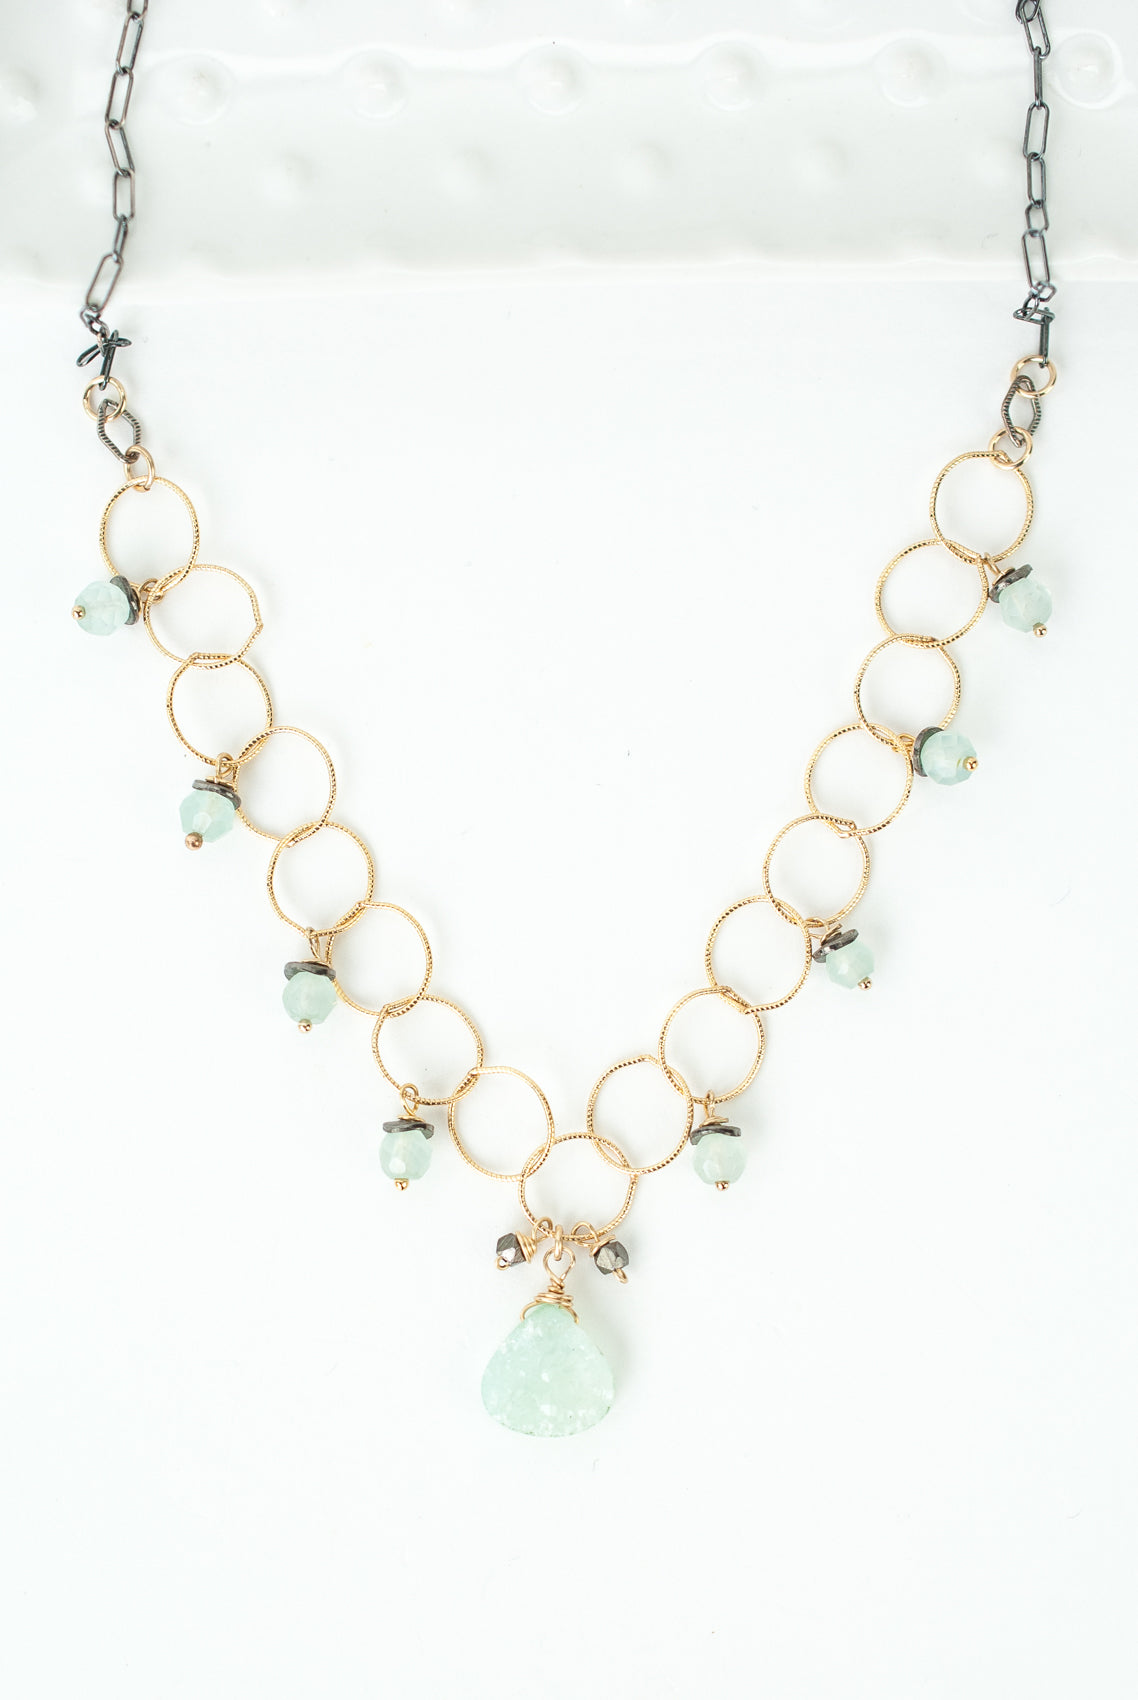 "One of a Kind 23.5-25.5"" Chalcedony, Druzy Simple Necklace"